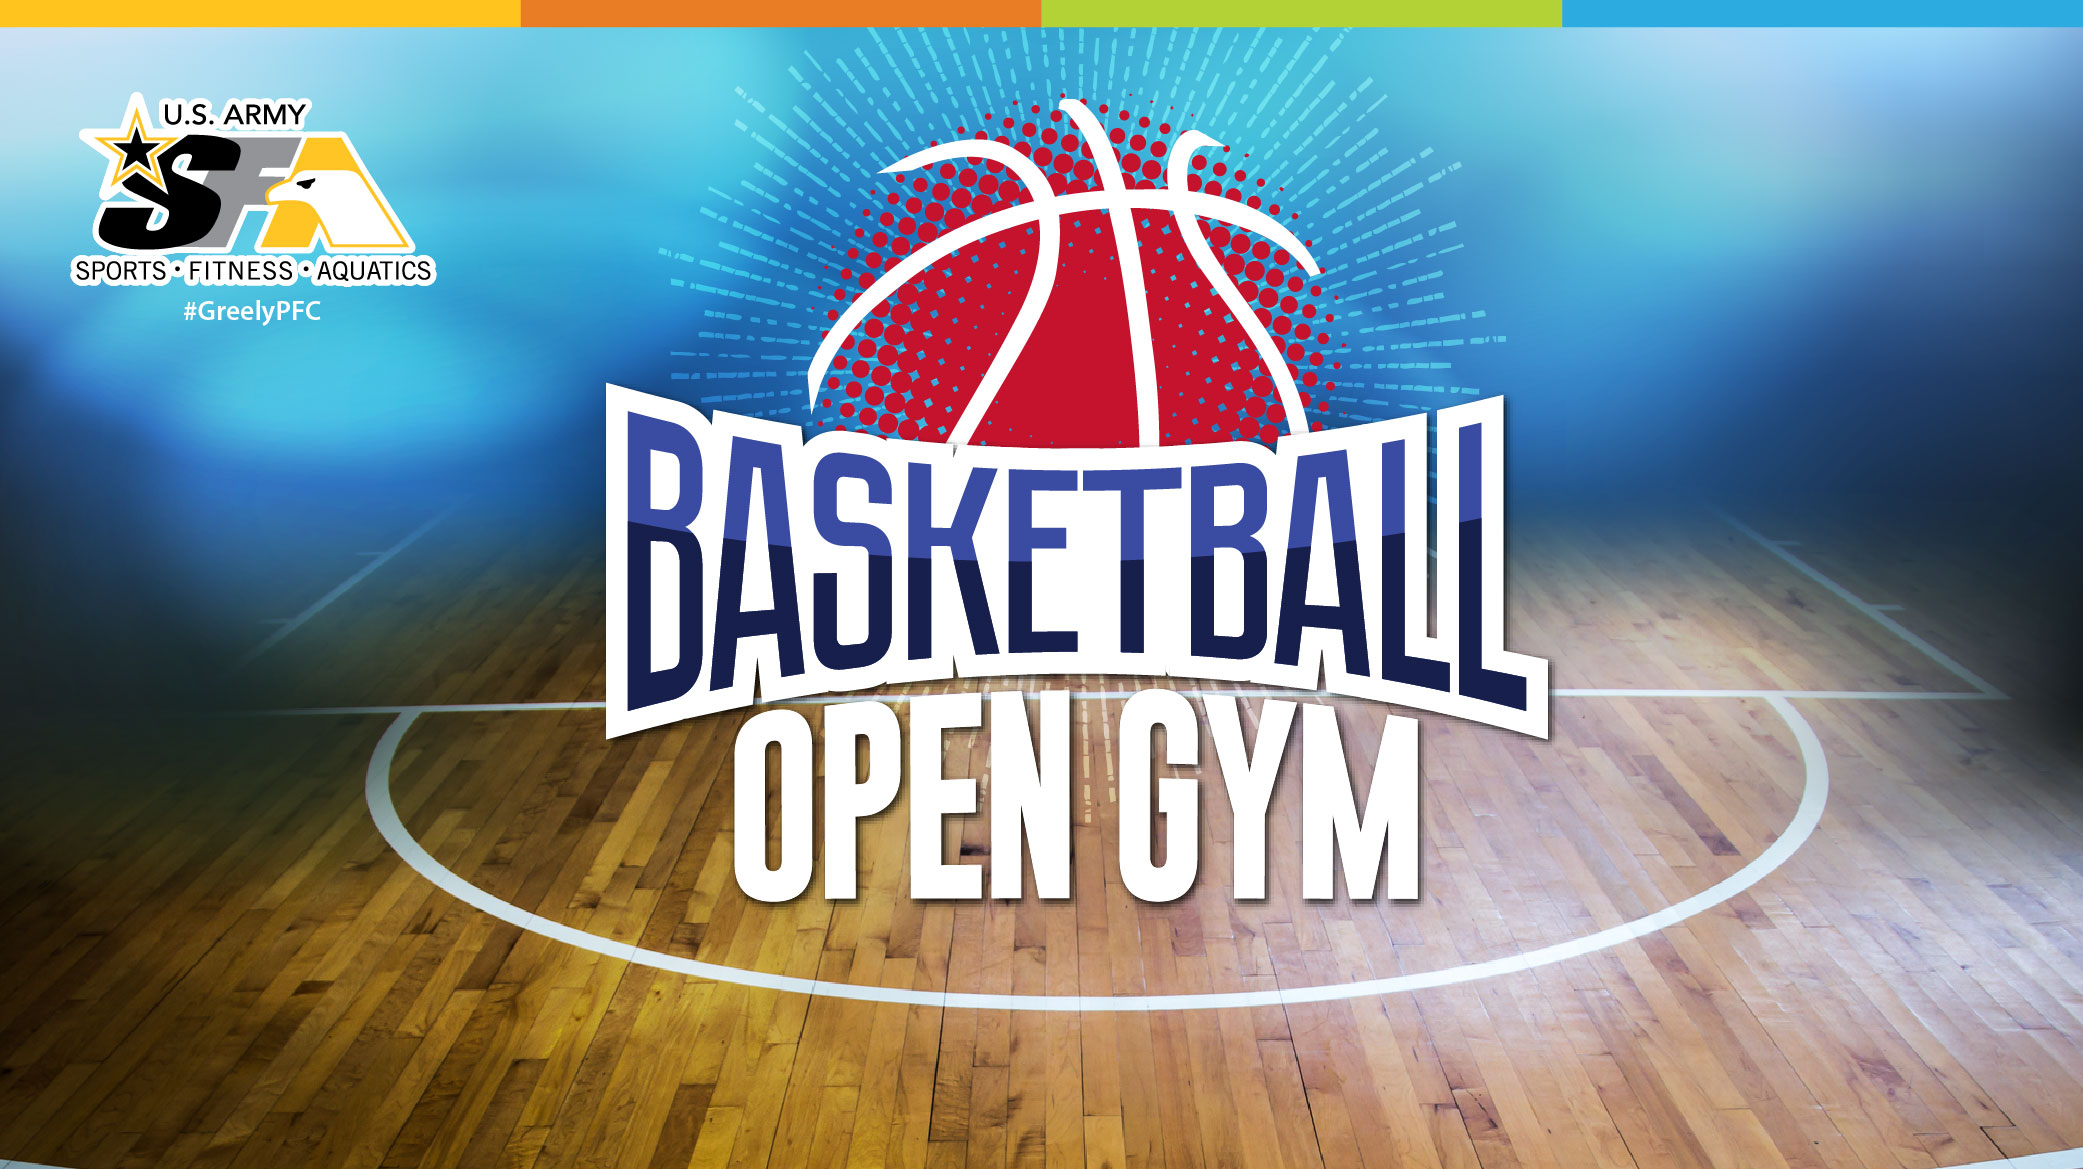 Basketball Open Gym